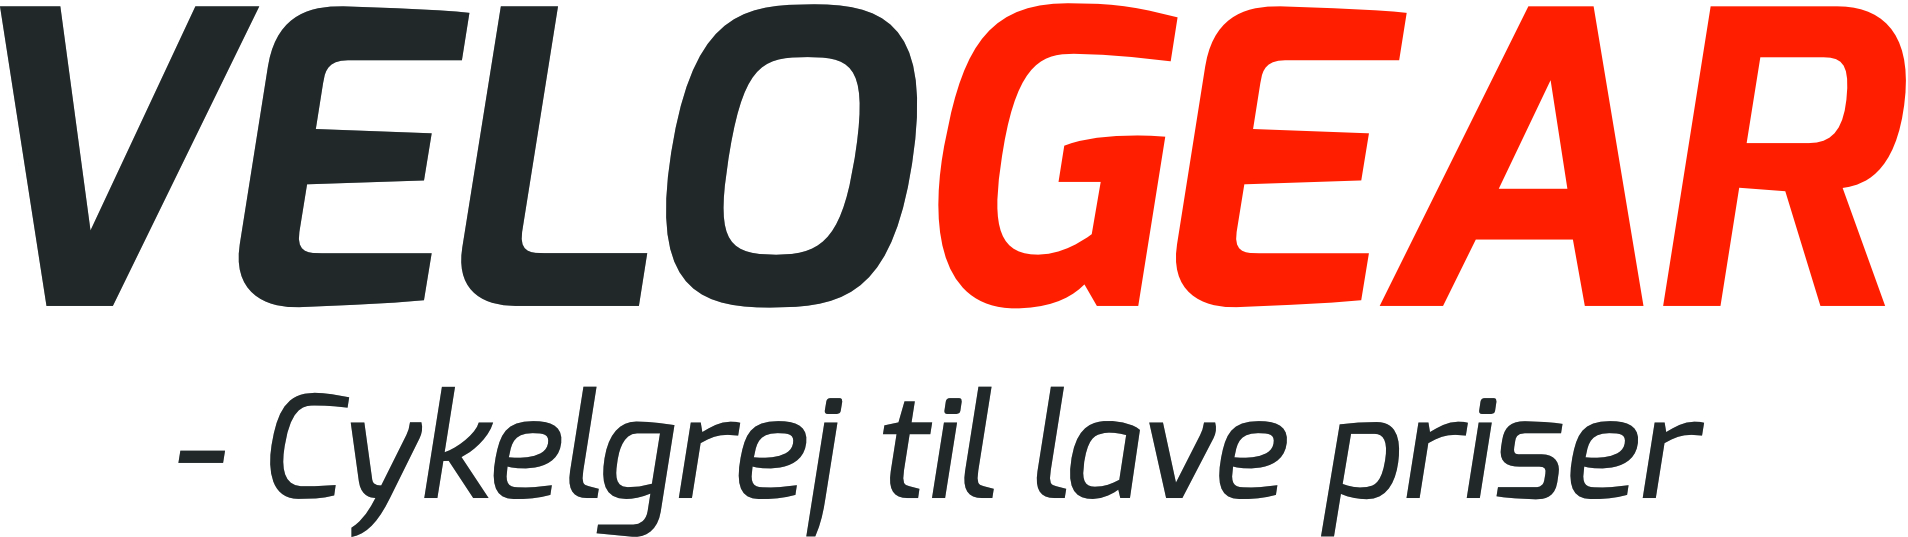 Velogear_Logo_High-Res.jpg